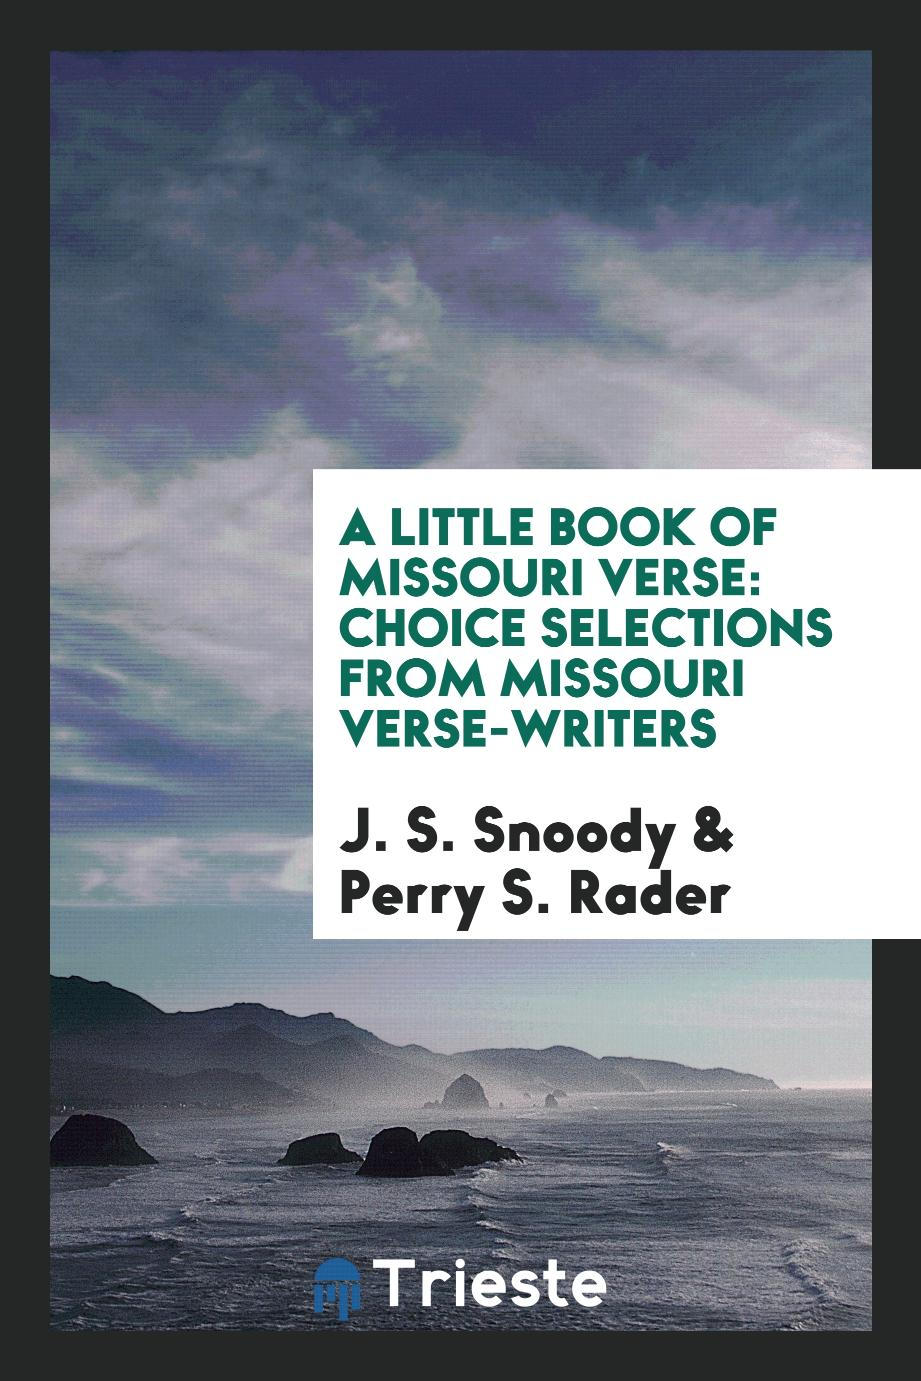 A Little Book of Missouri Verse: Choice Selections from Missouri Verse-Writers